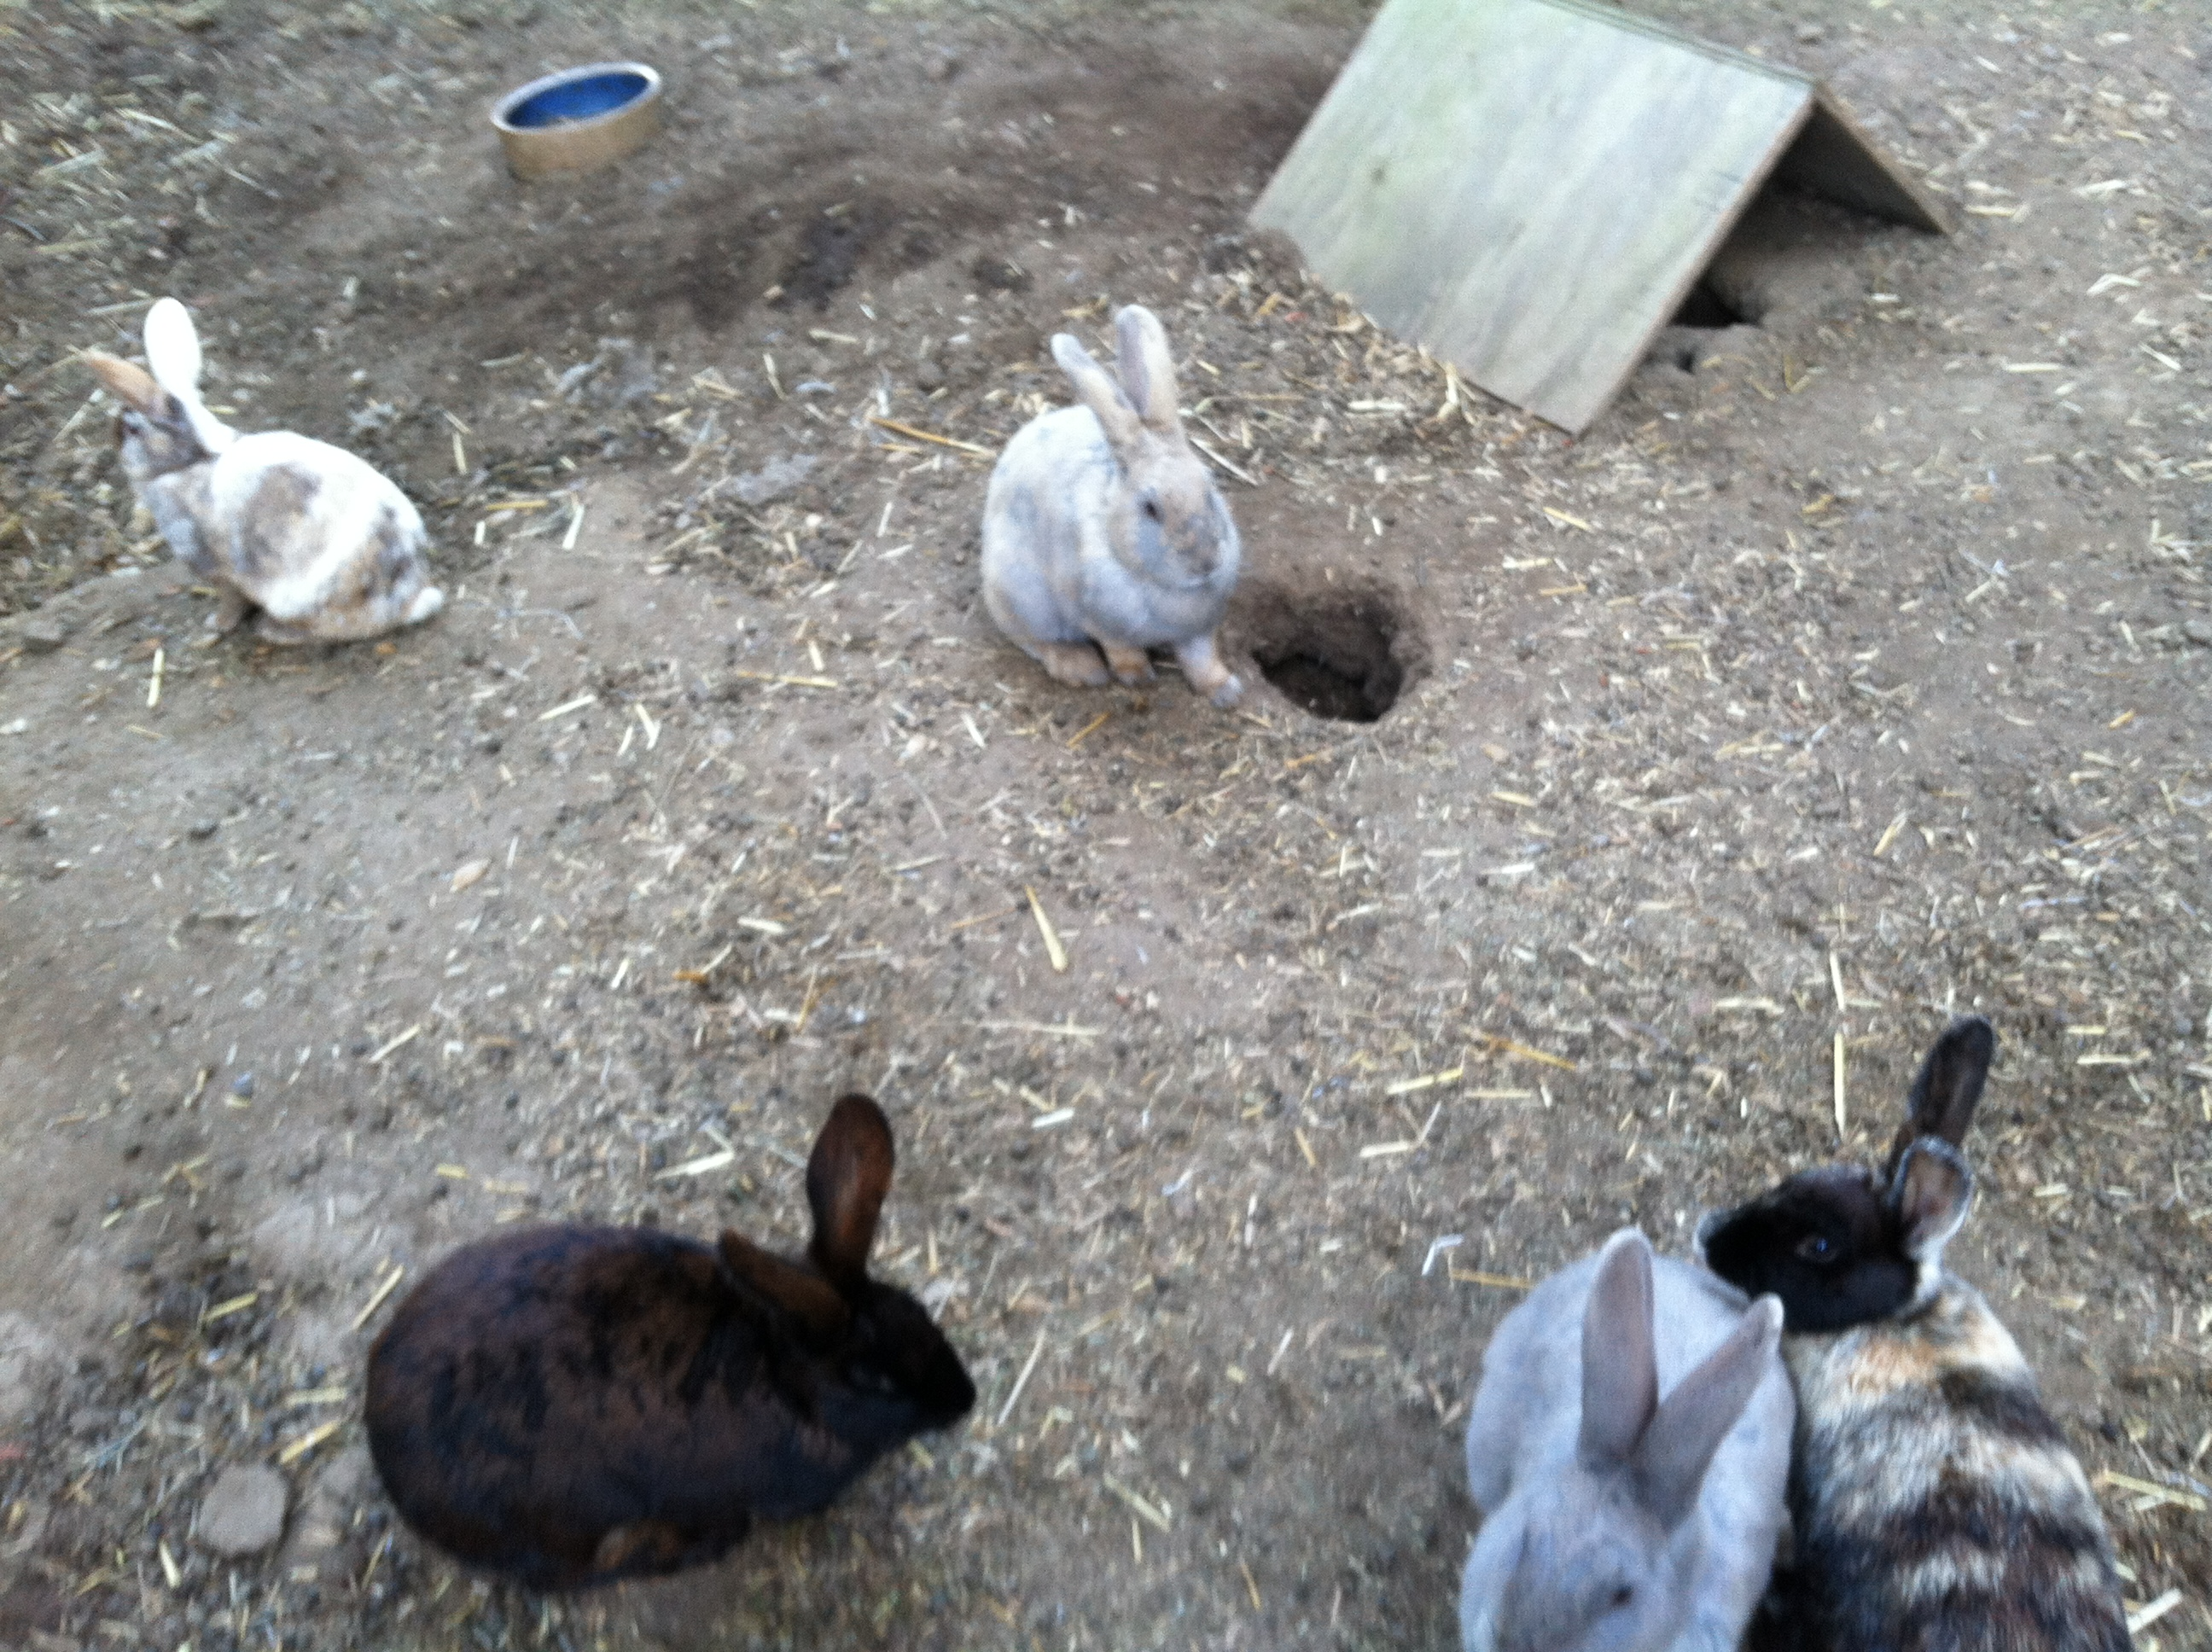 Some of our girls... our colony consists of American, Harlequin, Beveren, and American x Belgian Hare crosses